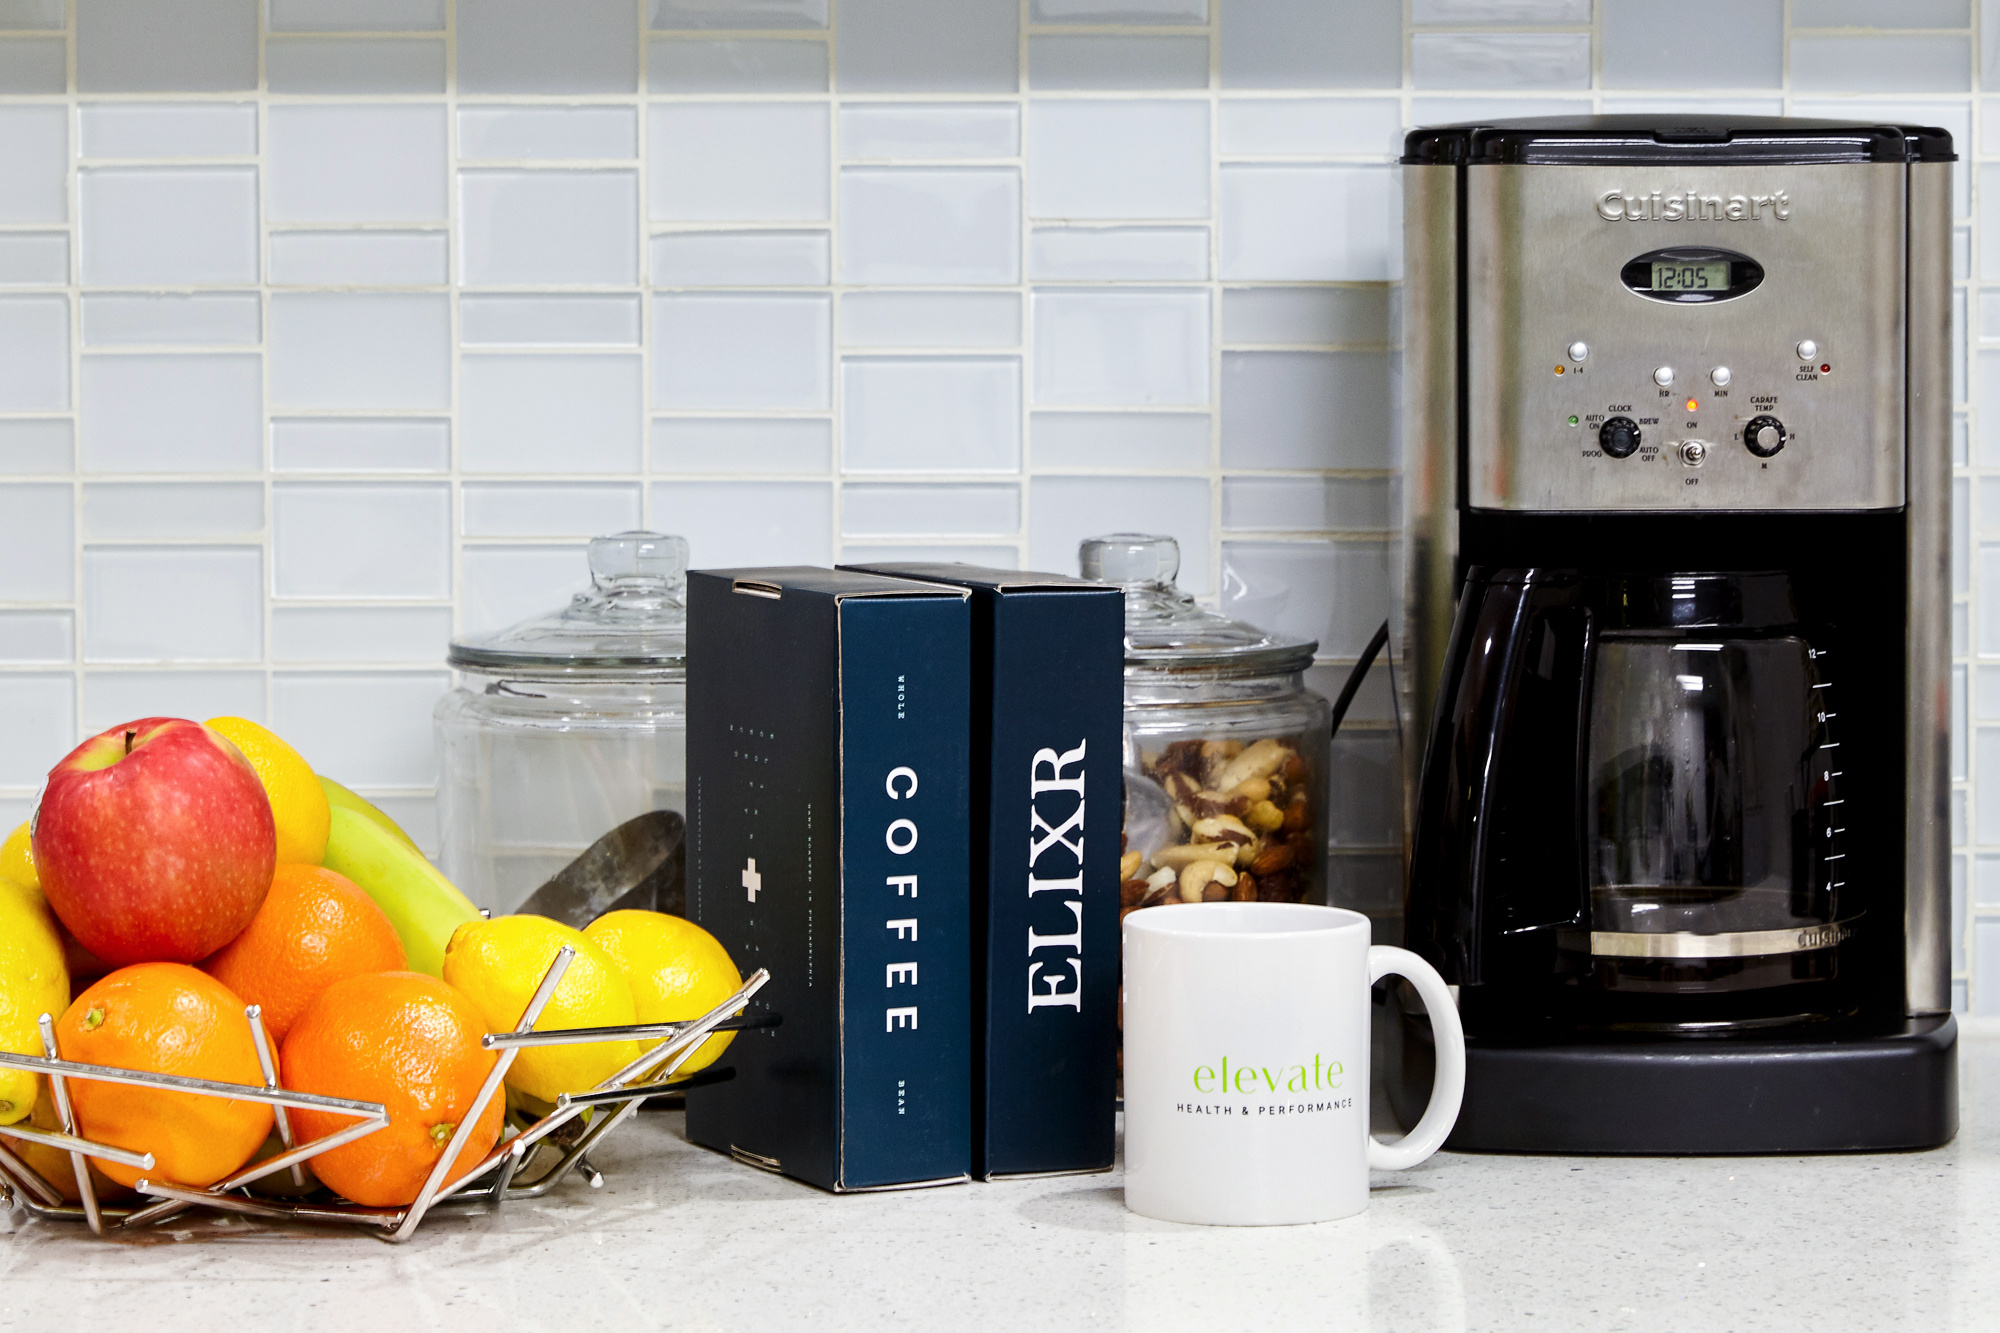 Coffee Maker and Fruit Basket